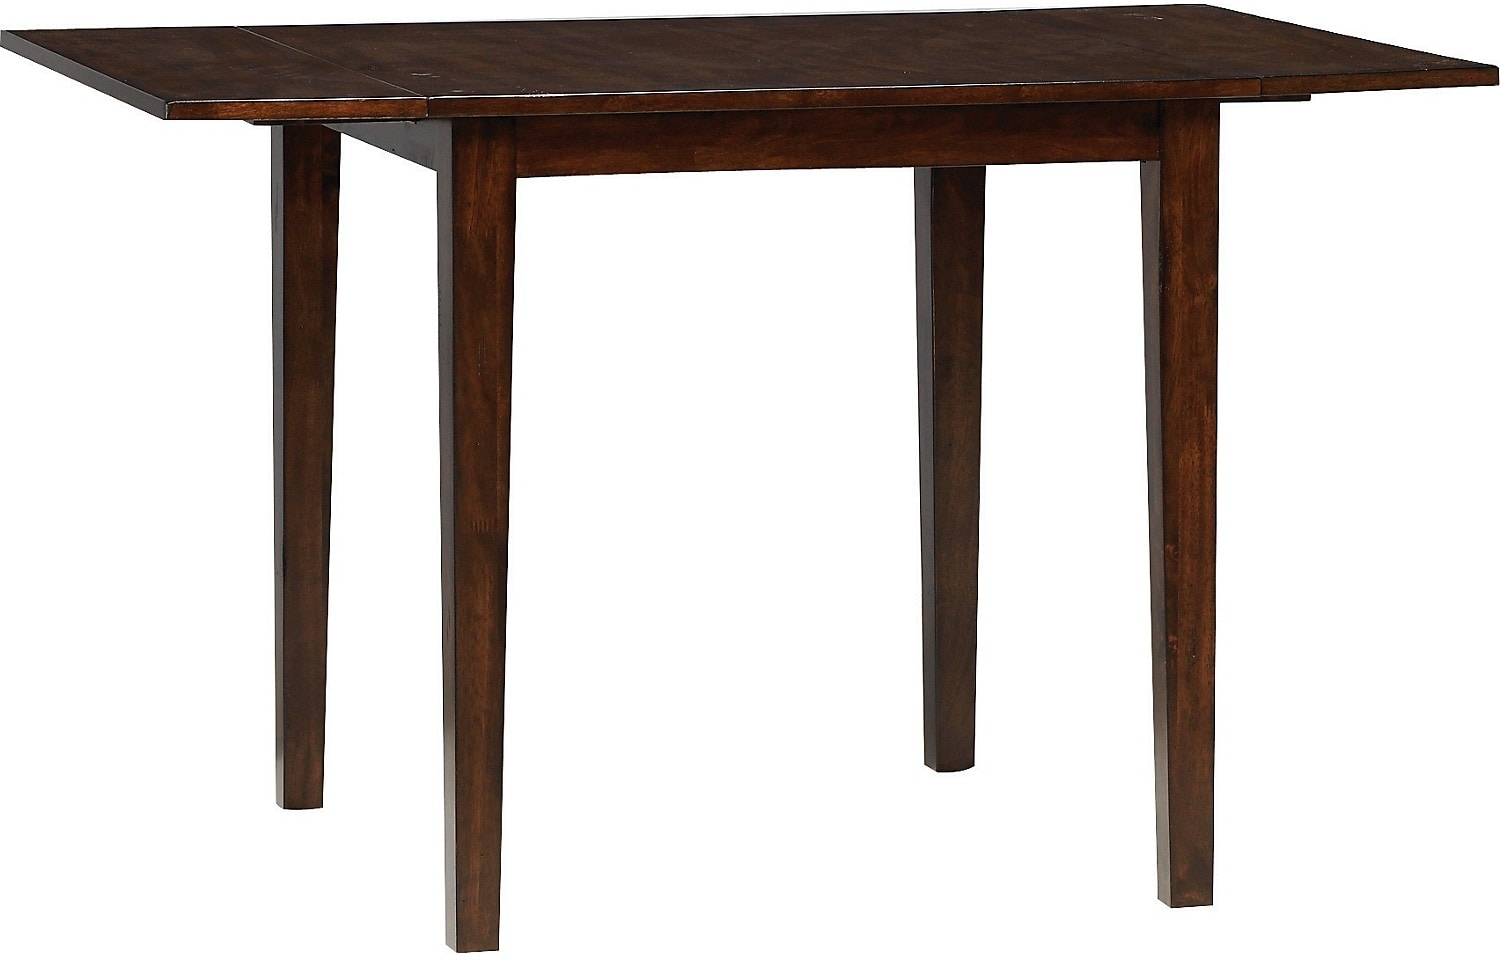 Adara Square Drop Leaf Table